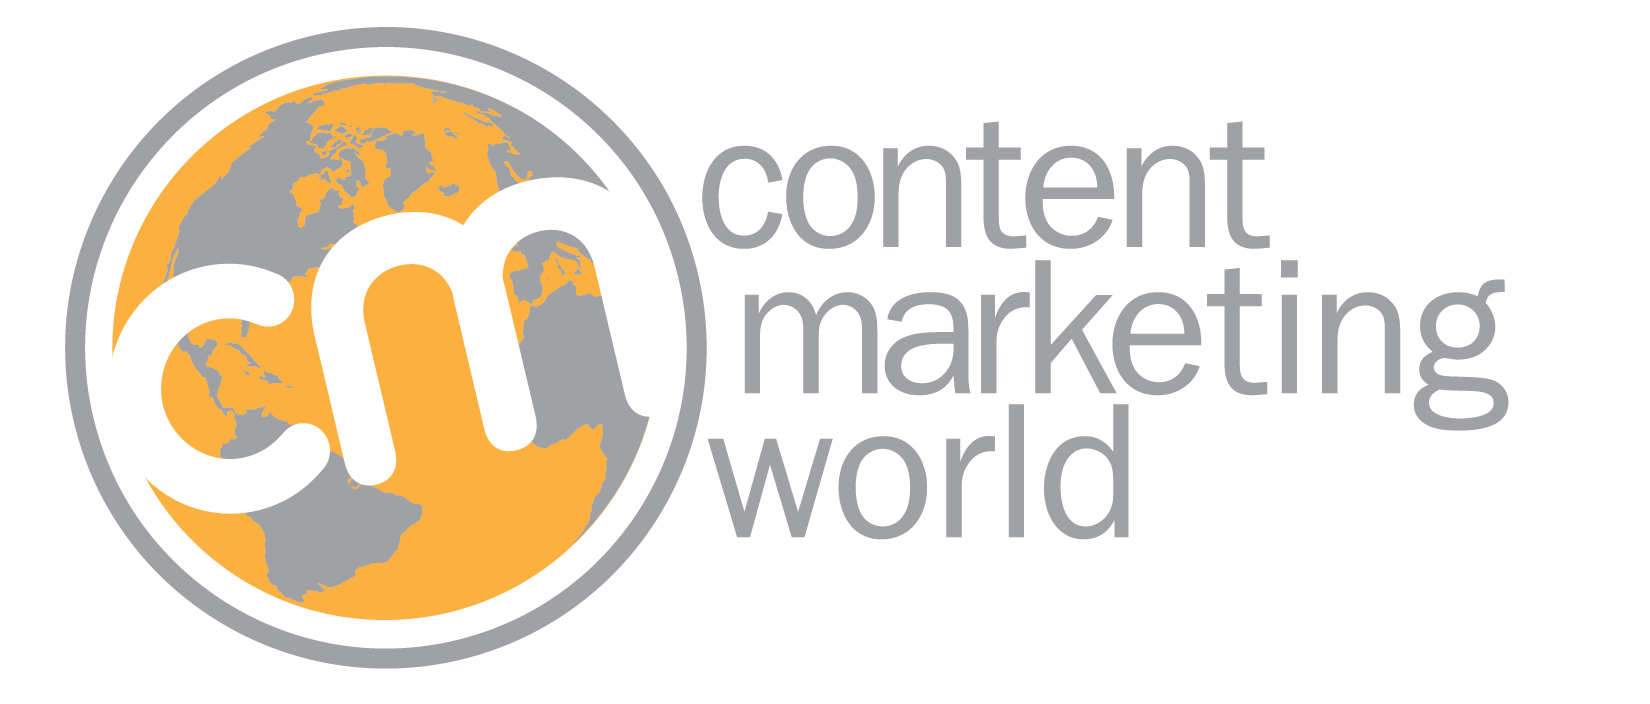 Content Marketing World.png